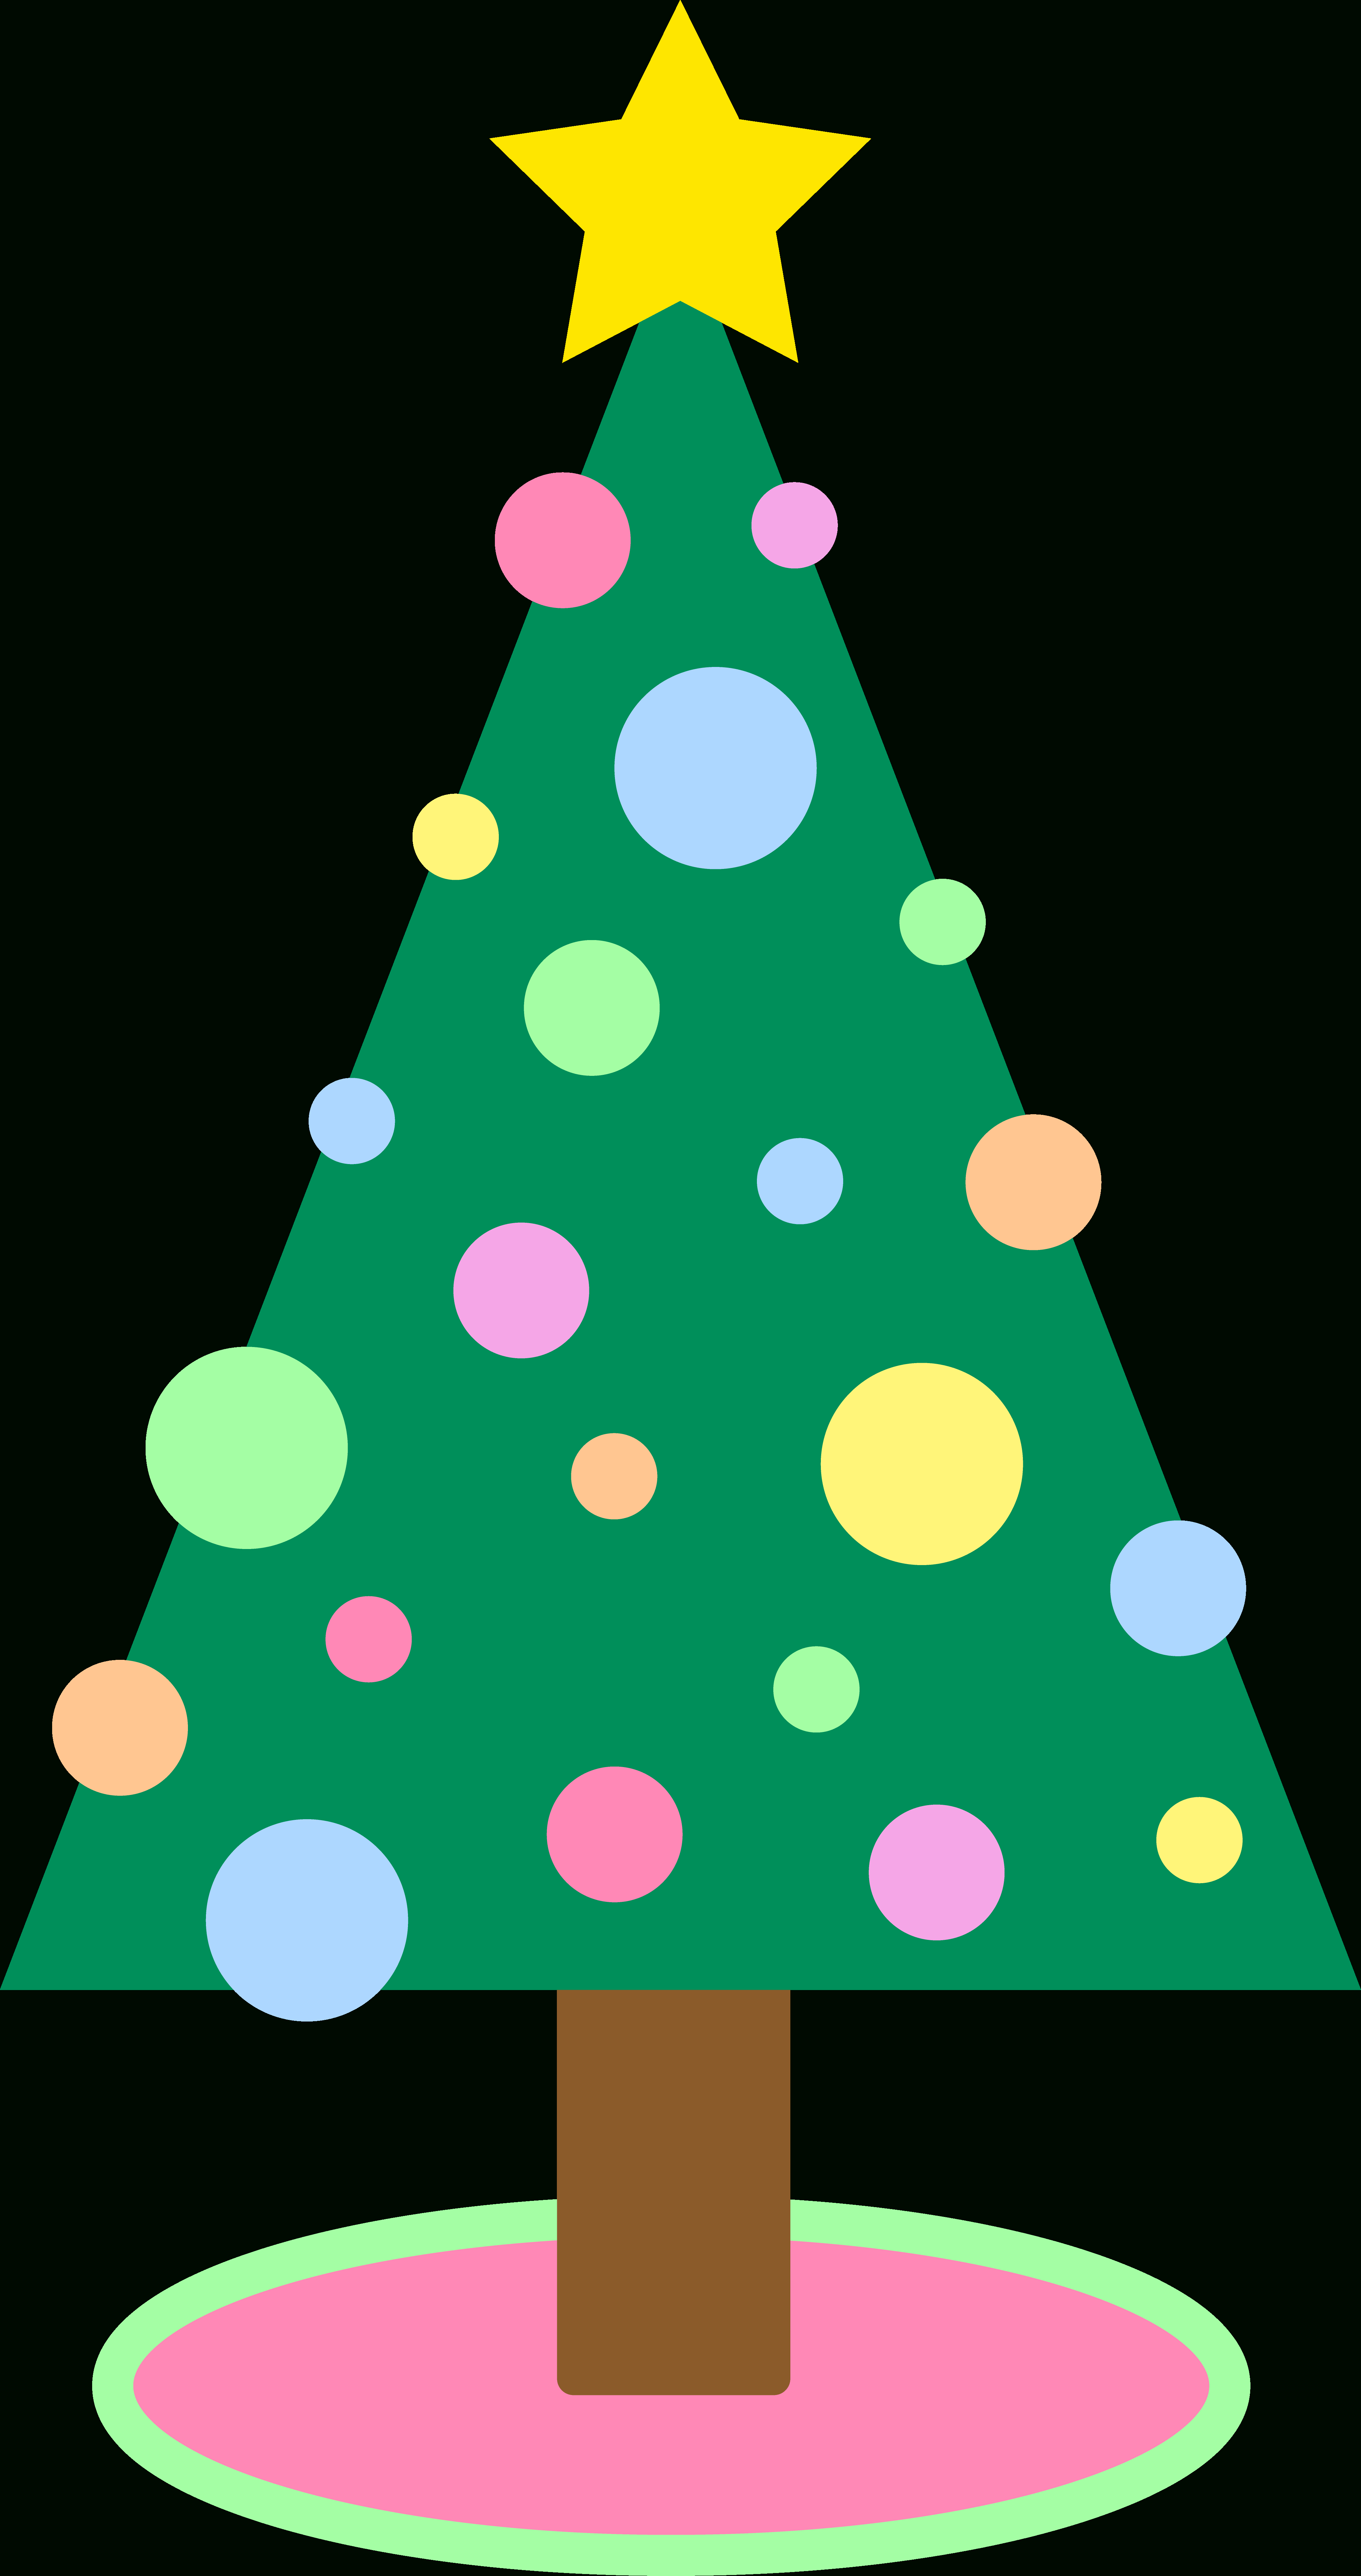 4150x7856 Cute Christmas Tree Drawing Christmas Tree Clip Art To Download